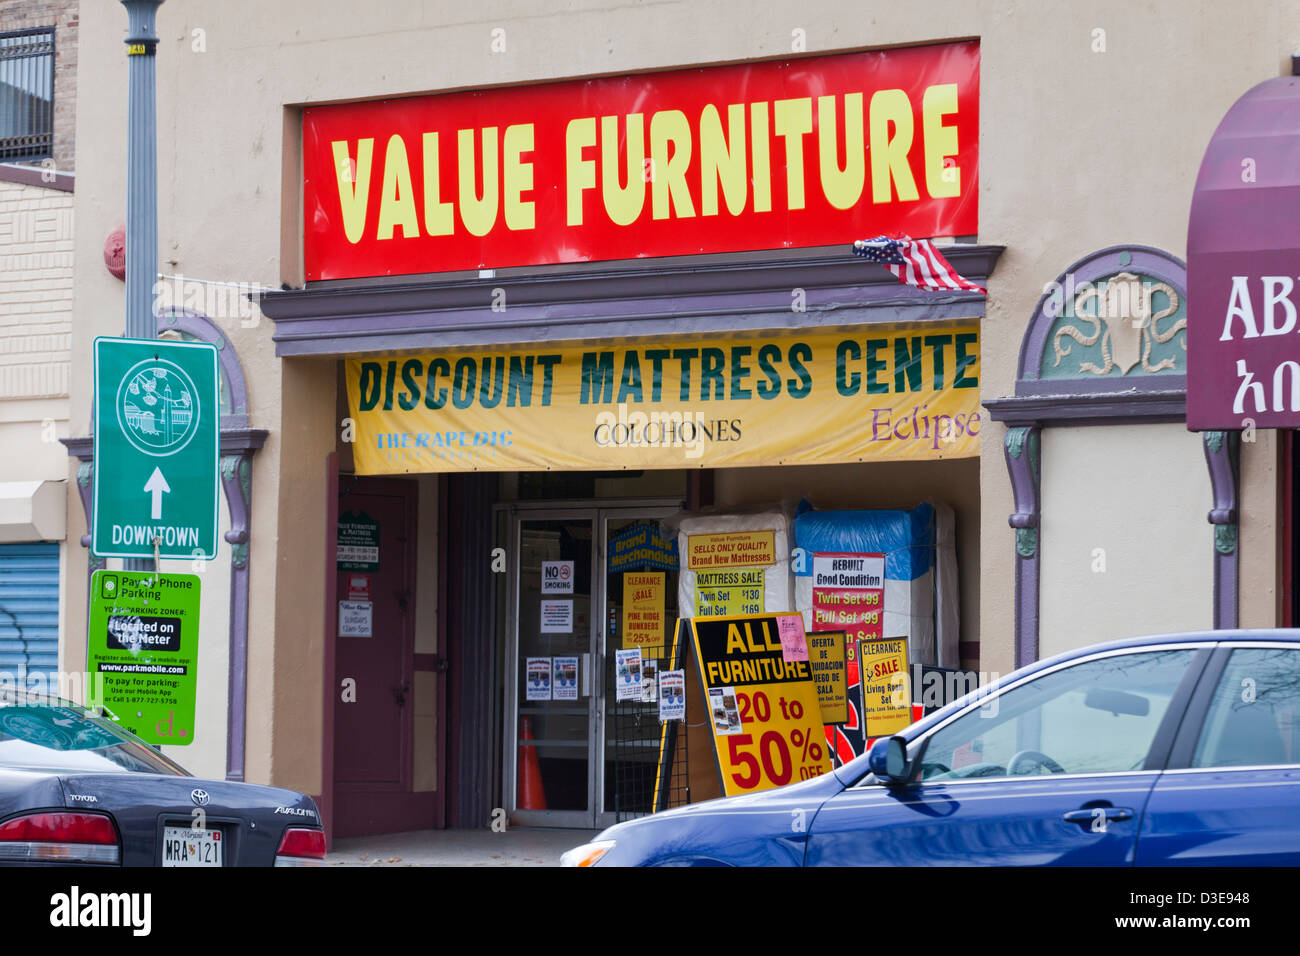 Discount furniture store - Stock Image